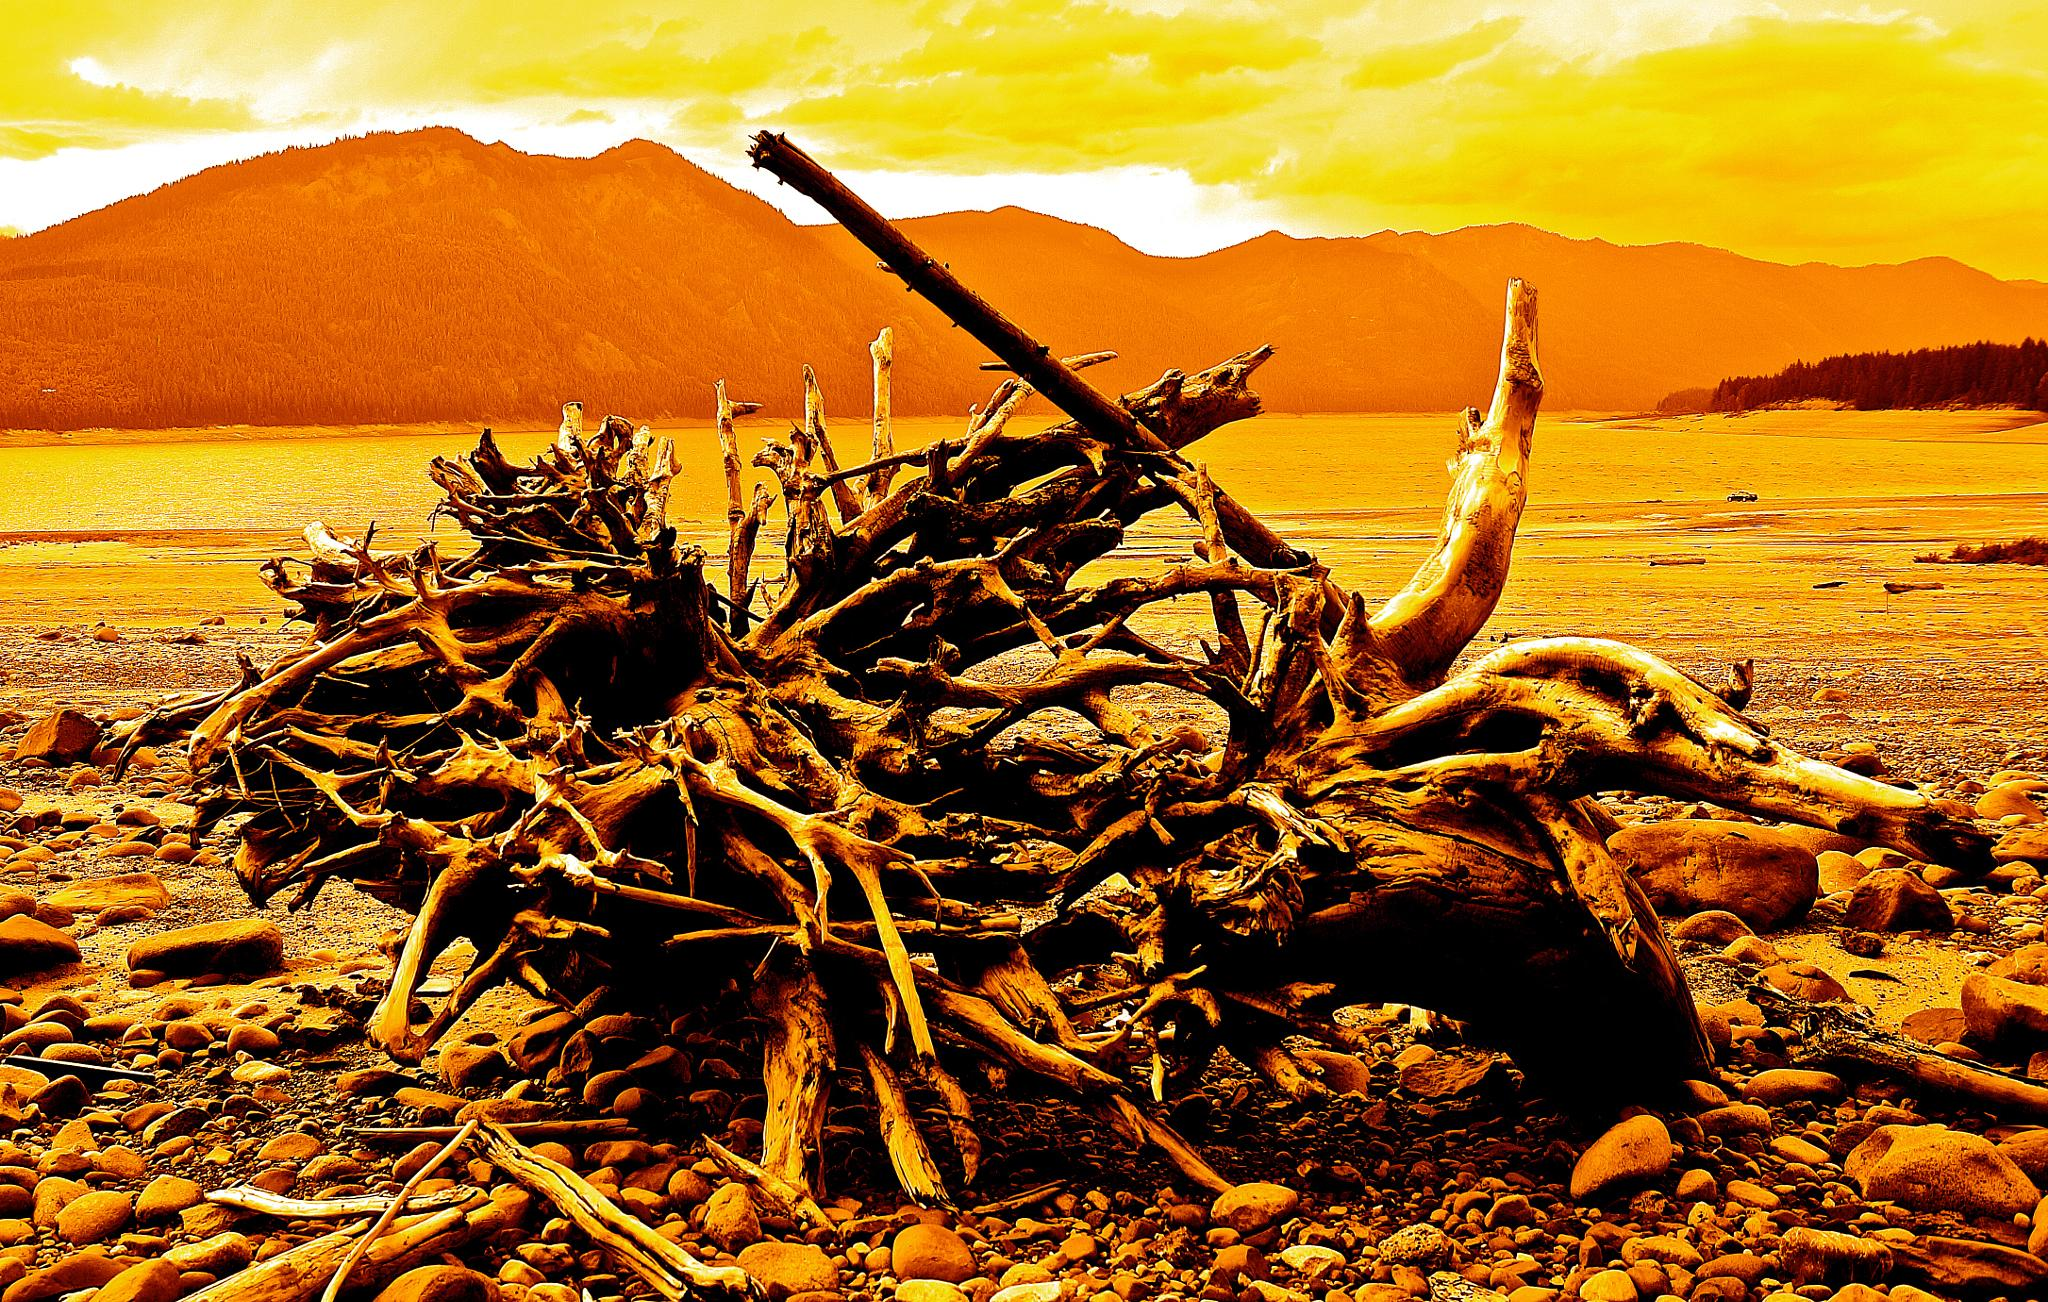 ALIEN ROOTS FIGHT ON PLANET MARS by orhidea images